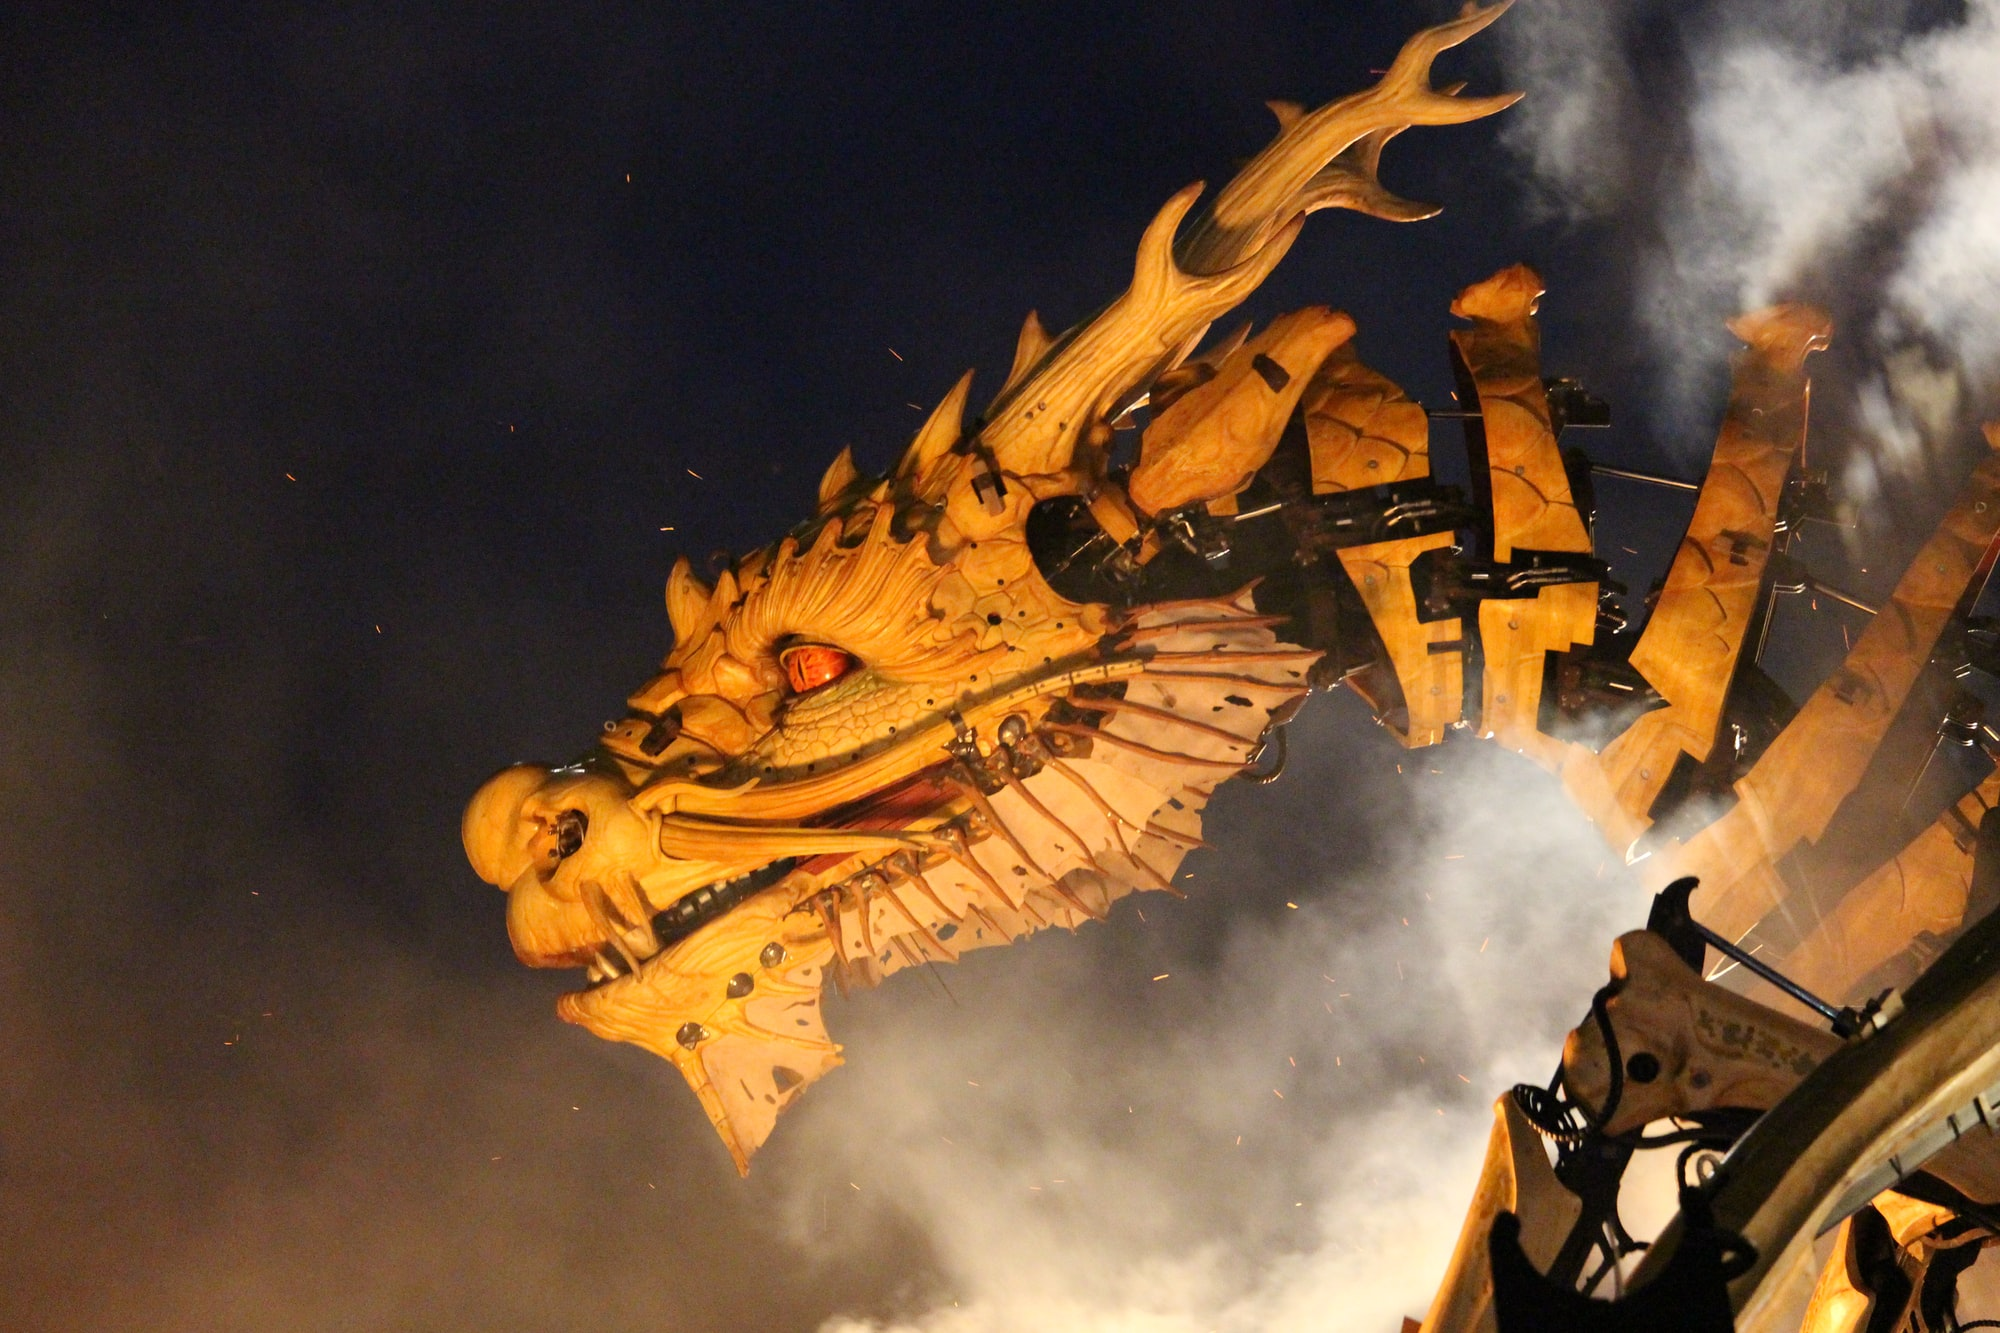 Software dominates industries like the fire breathing dragons in Game of Thrones